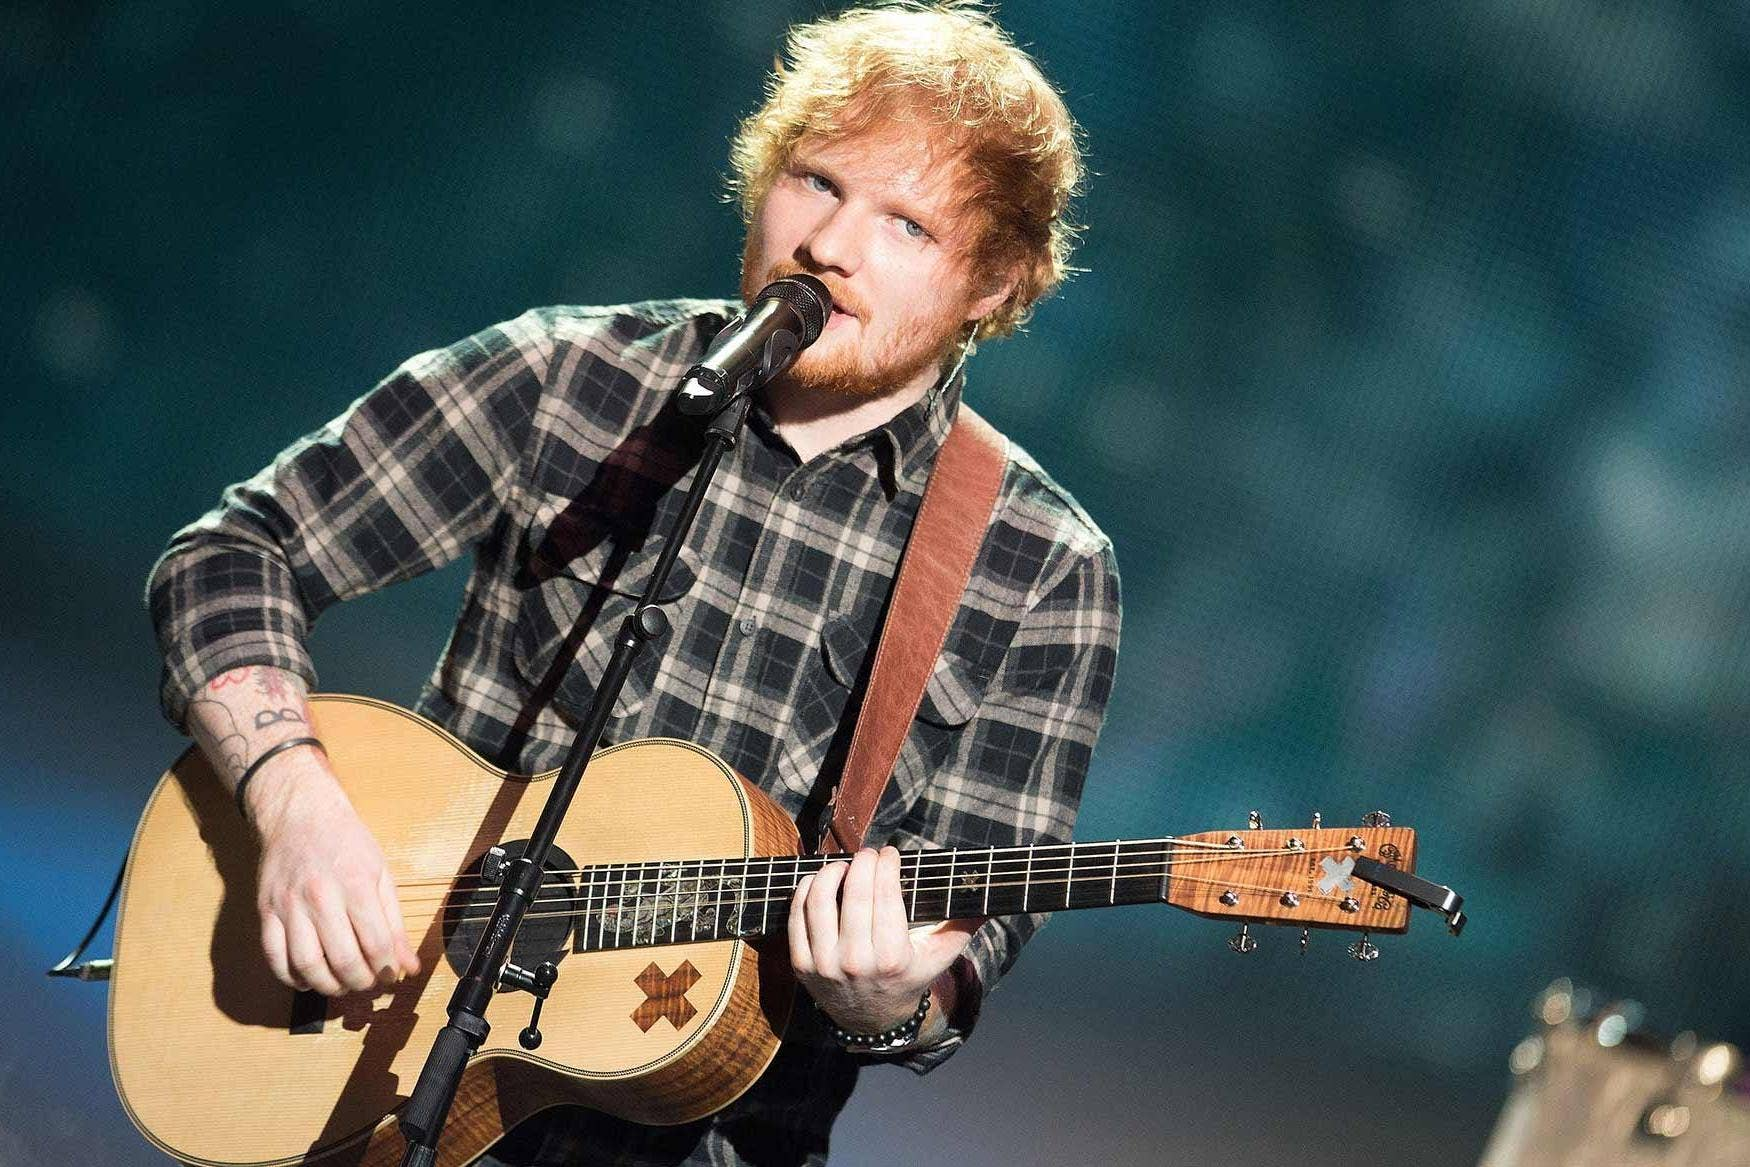 New father Ed Sheeran takes time away from nappies for guitar giveaway